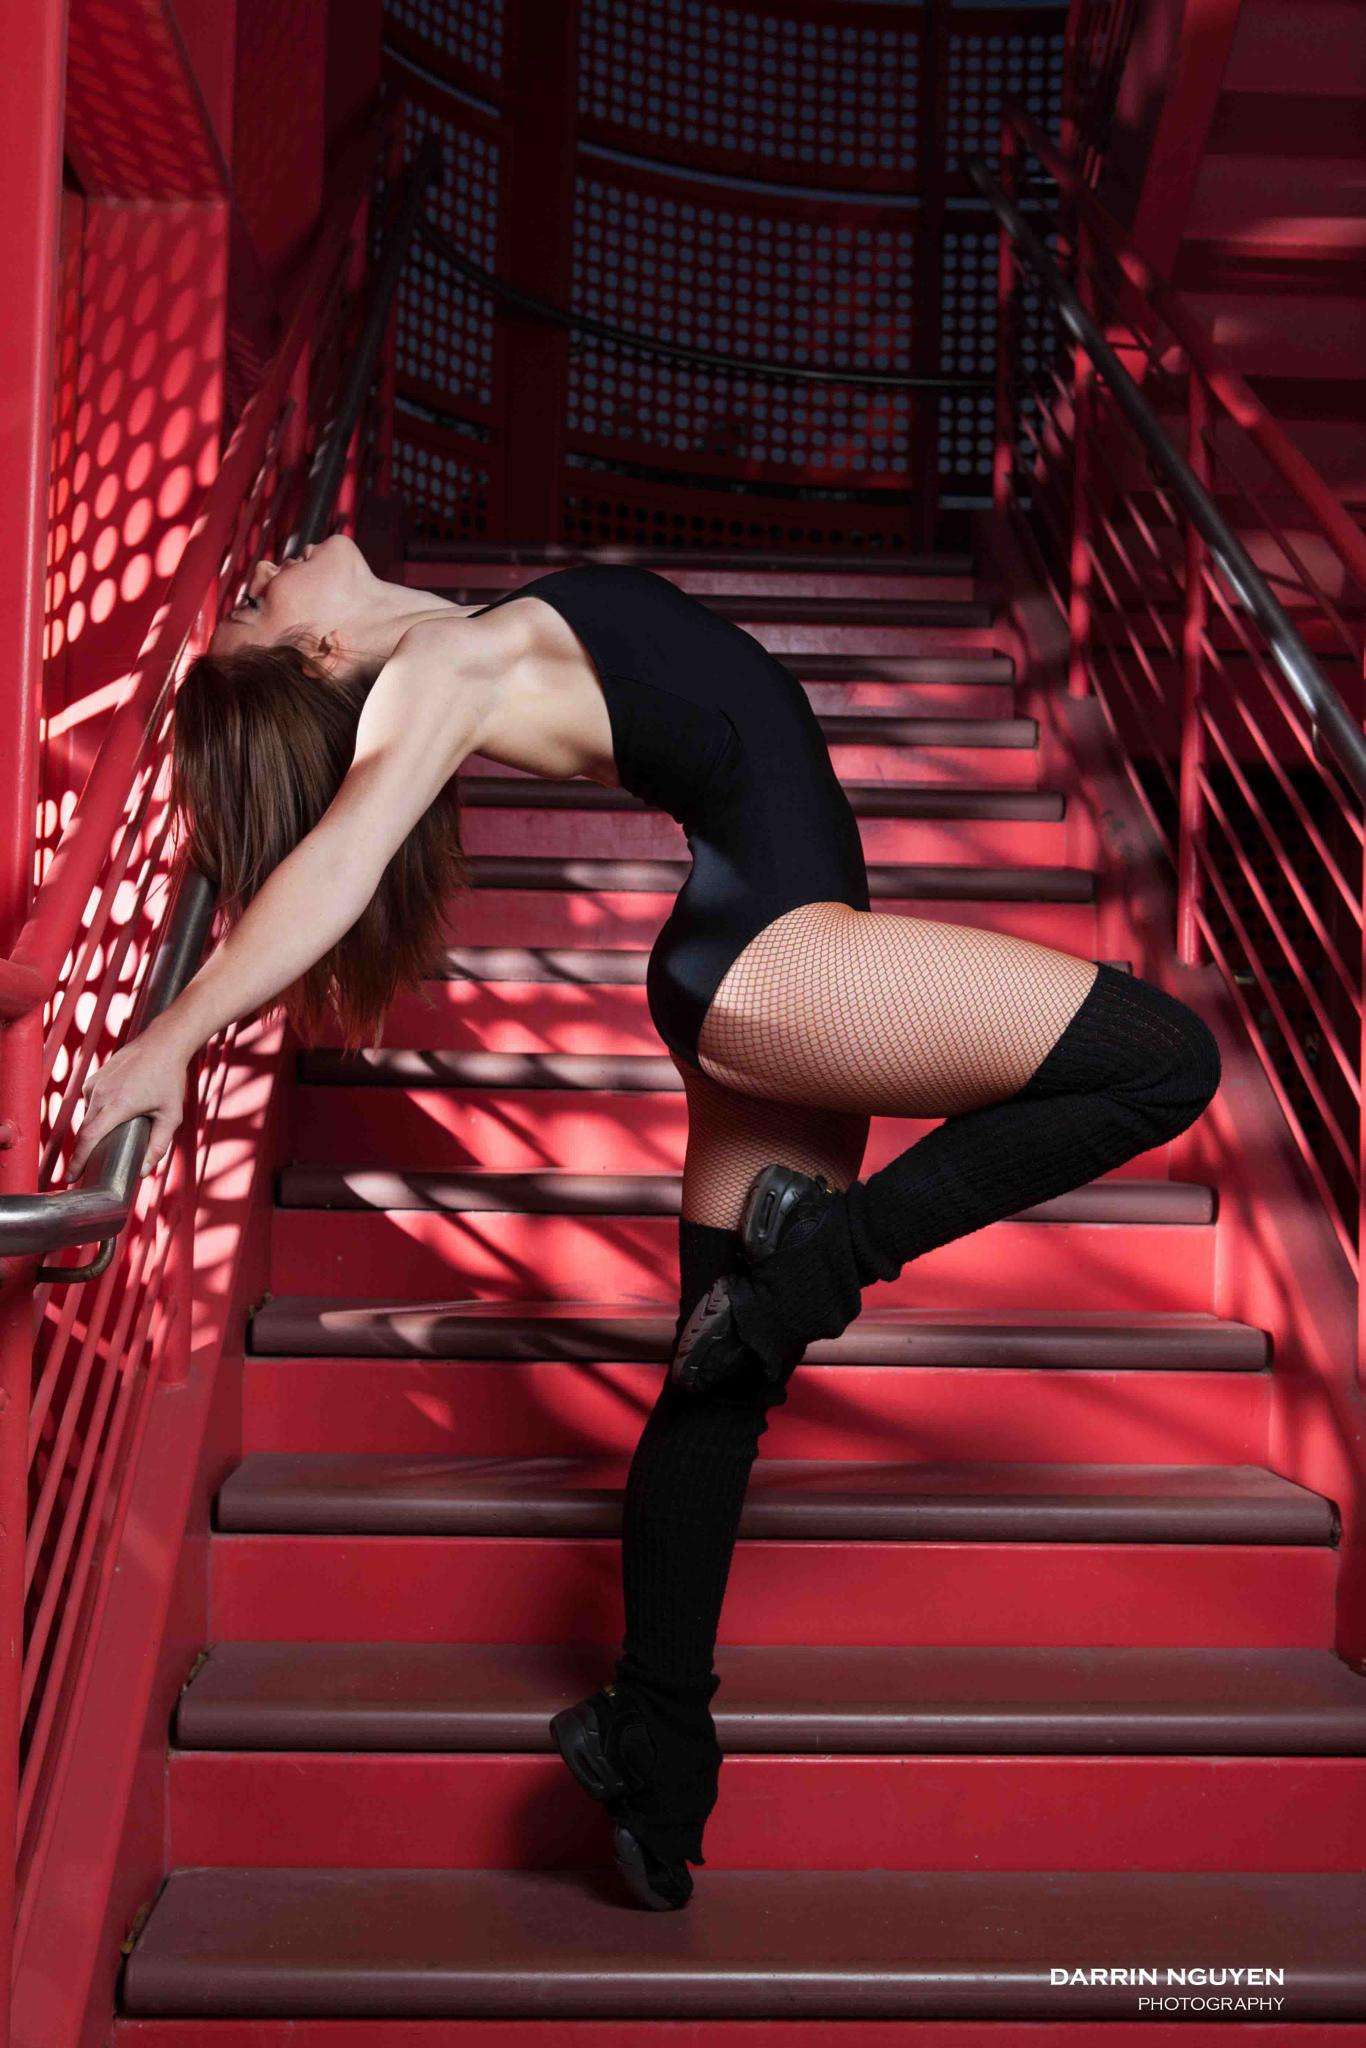 Red Stairs by DarrinNguyen